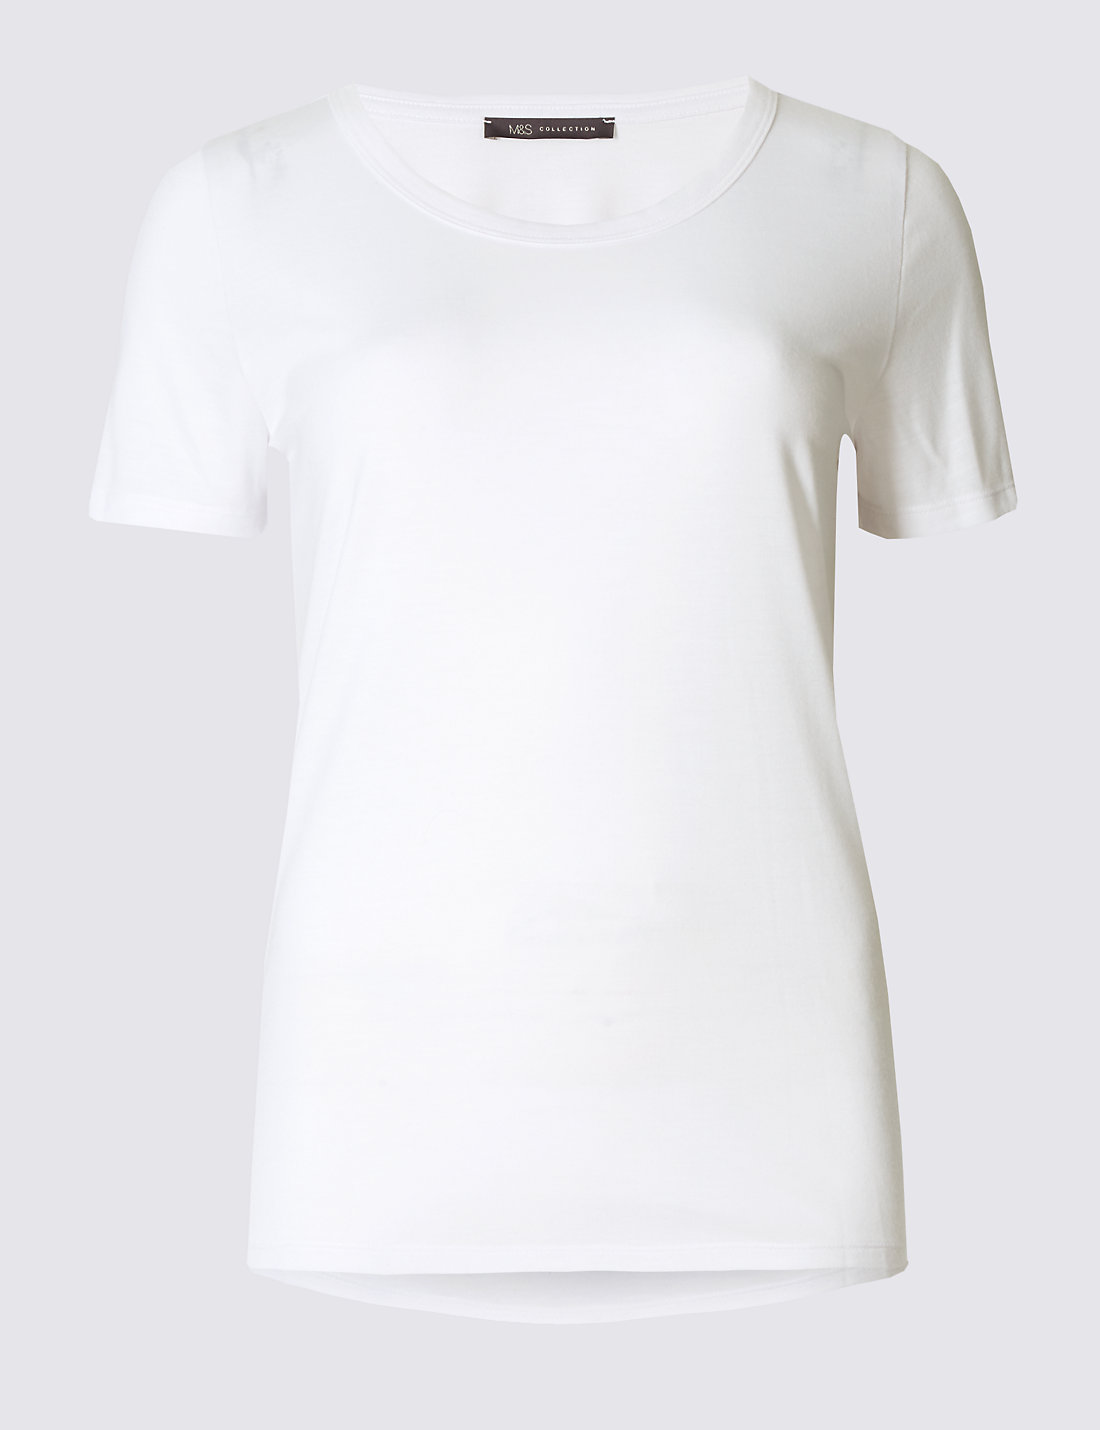 T shirt white black - Round Neck Short Sleeve T Shirt